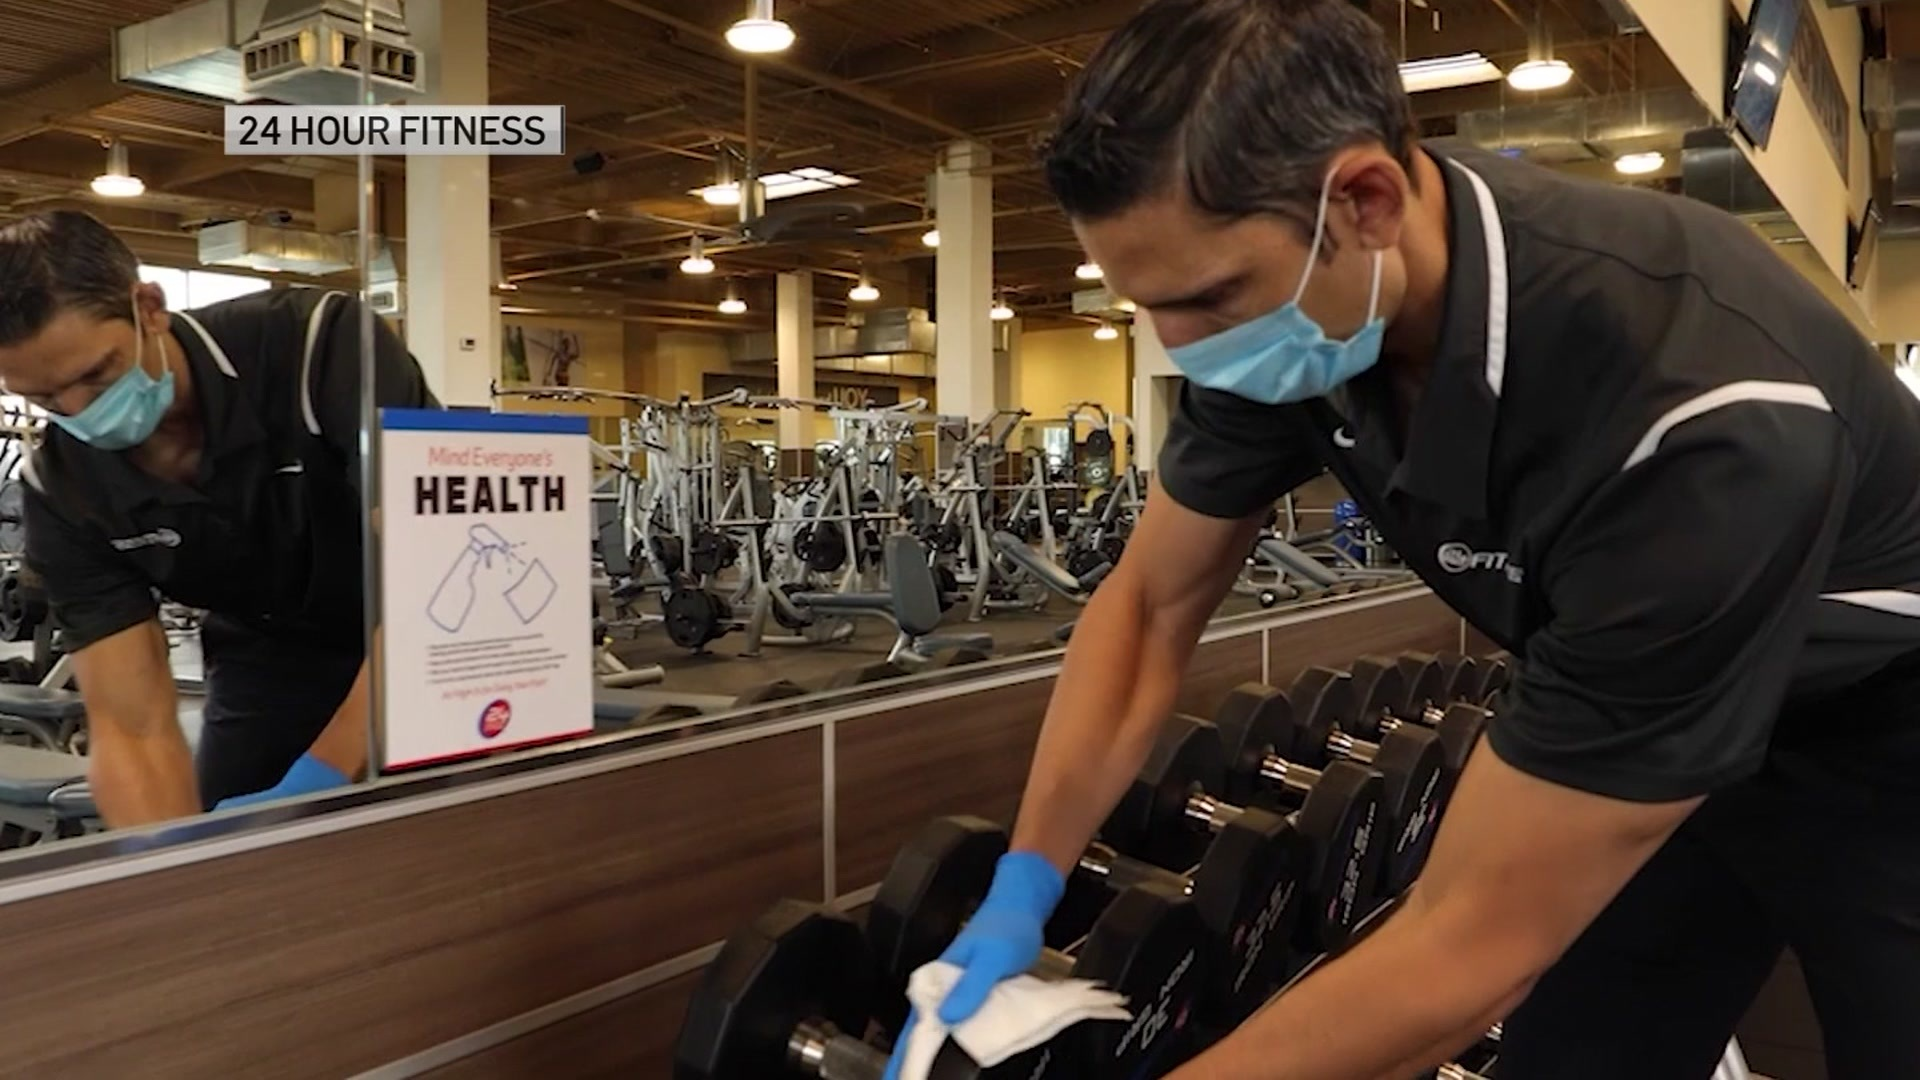 Exclusive 24 Hour Fitness Ceo Reveals Reenvisioned Gym Experience Nbc 5 Dallas Fort Worth